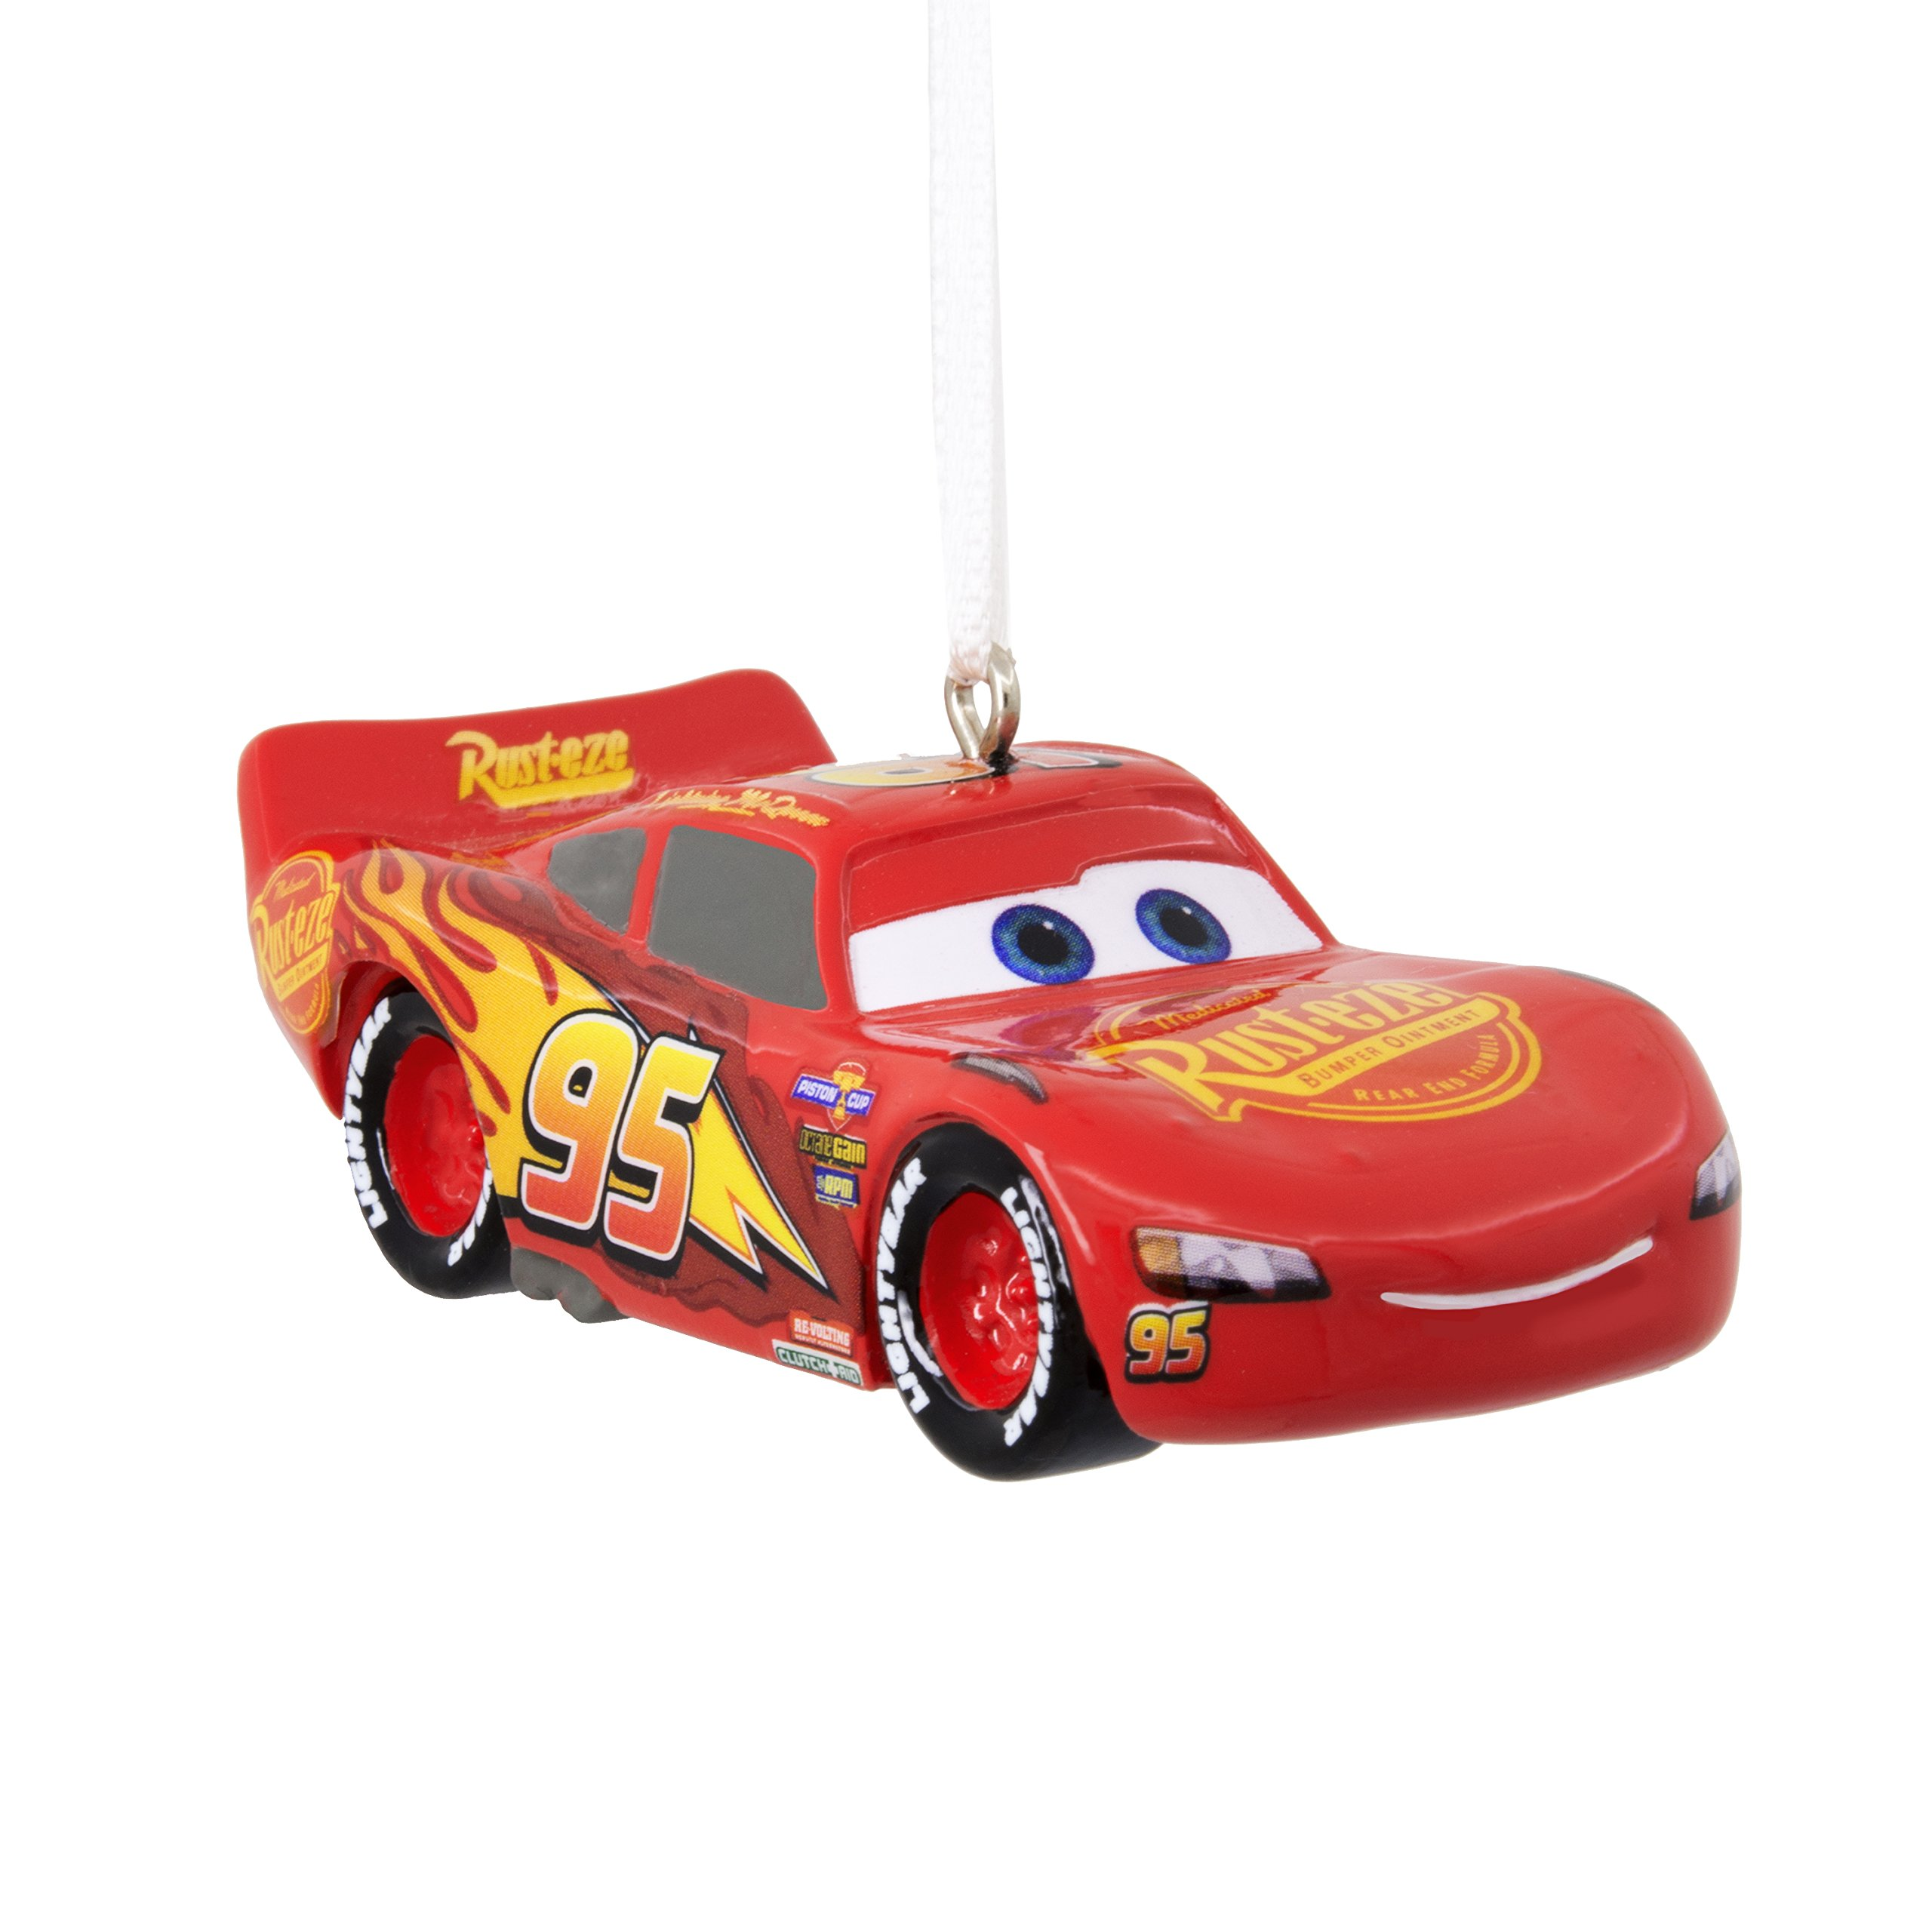 Hallmark Christmas Ornament Disney Pixar Cars Lightning McQueen Car